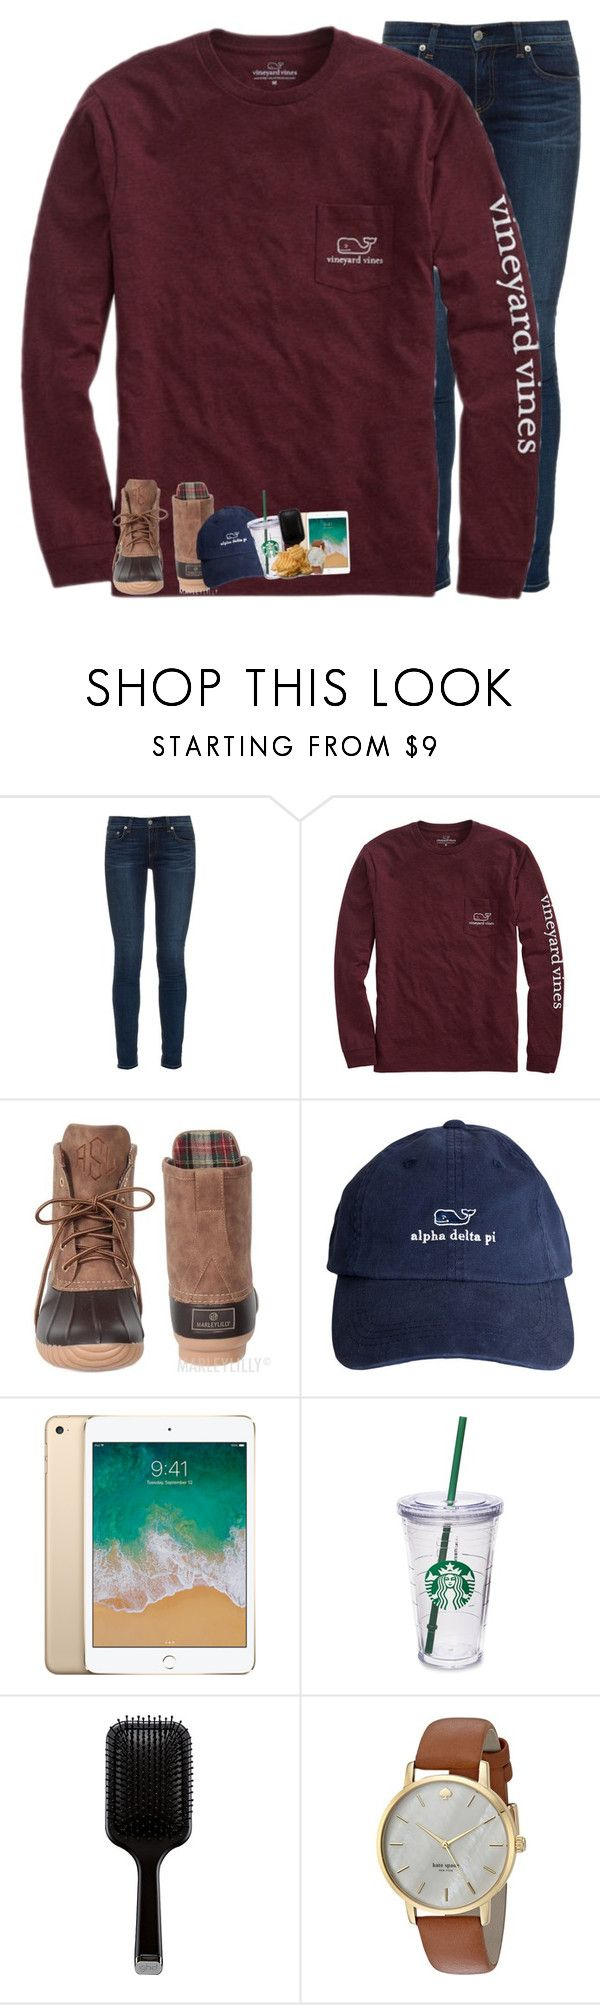 """night everyone "" by rileykleiin ❤ liked on Polyvore featuring rag & bone, Vineyard Vines, Starbucks, GHD and Kate Spade"